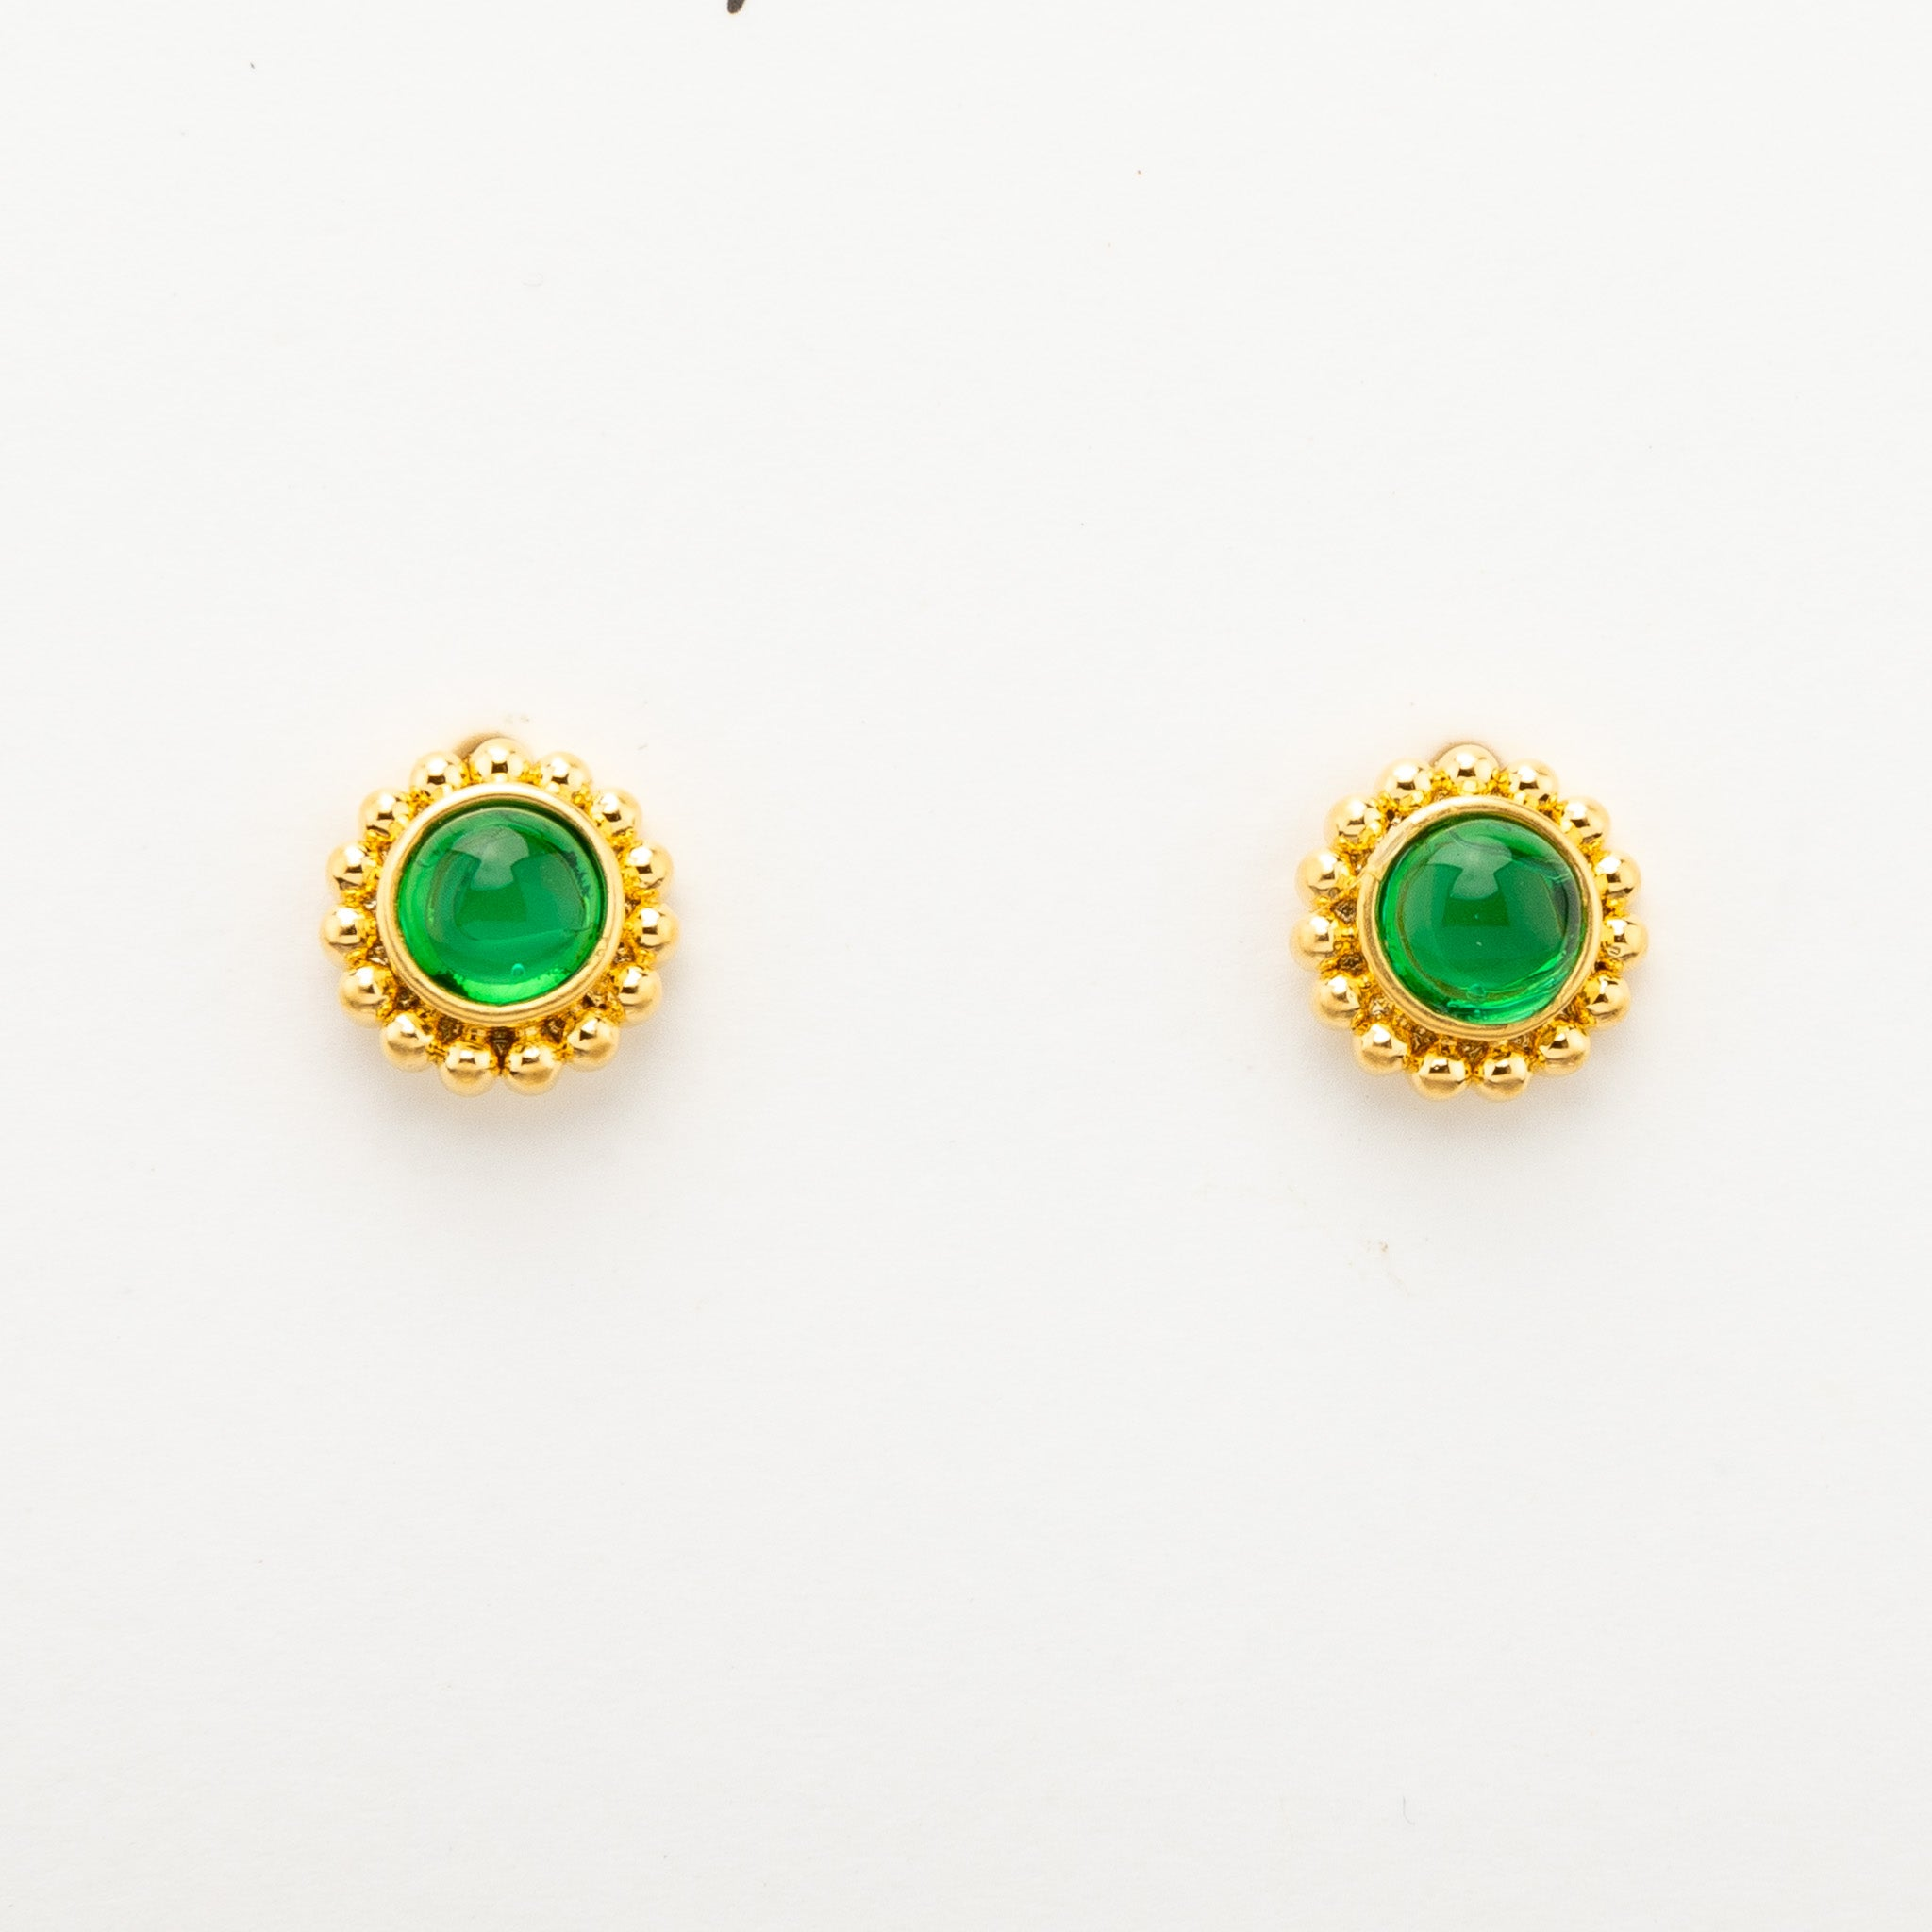 Green Stud Earrings - gold